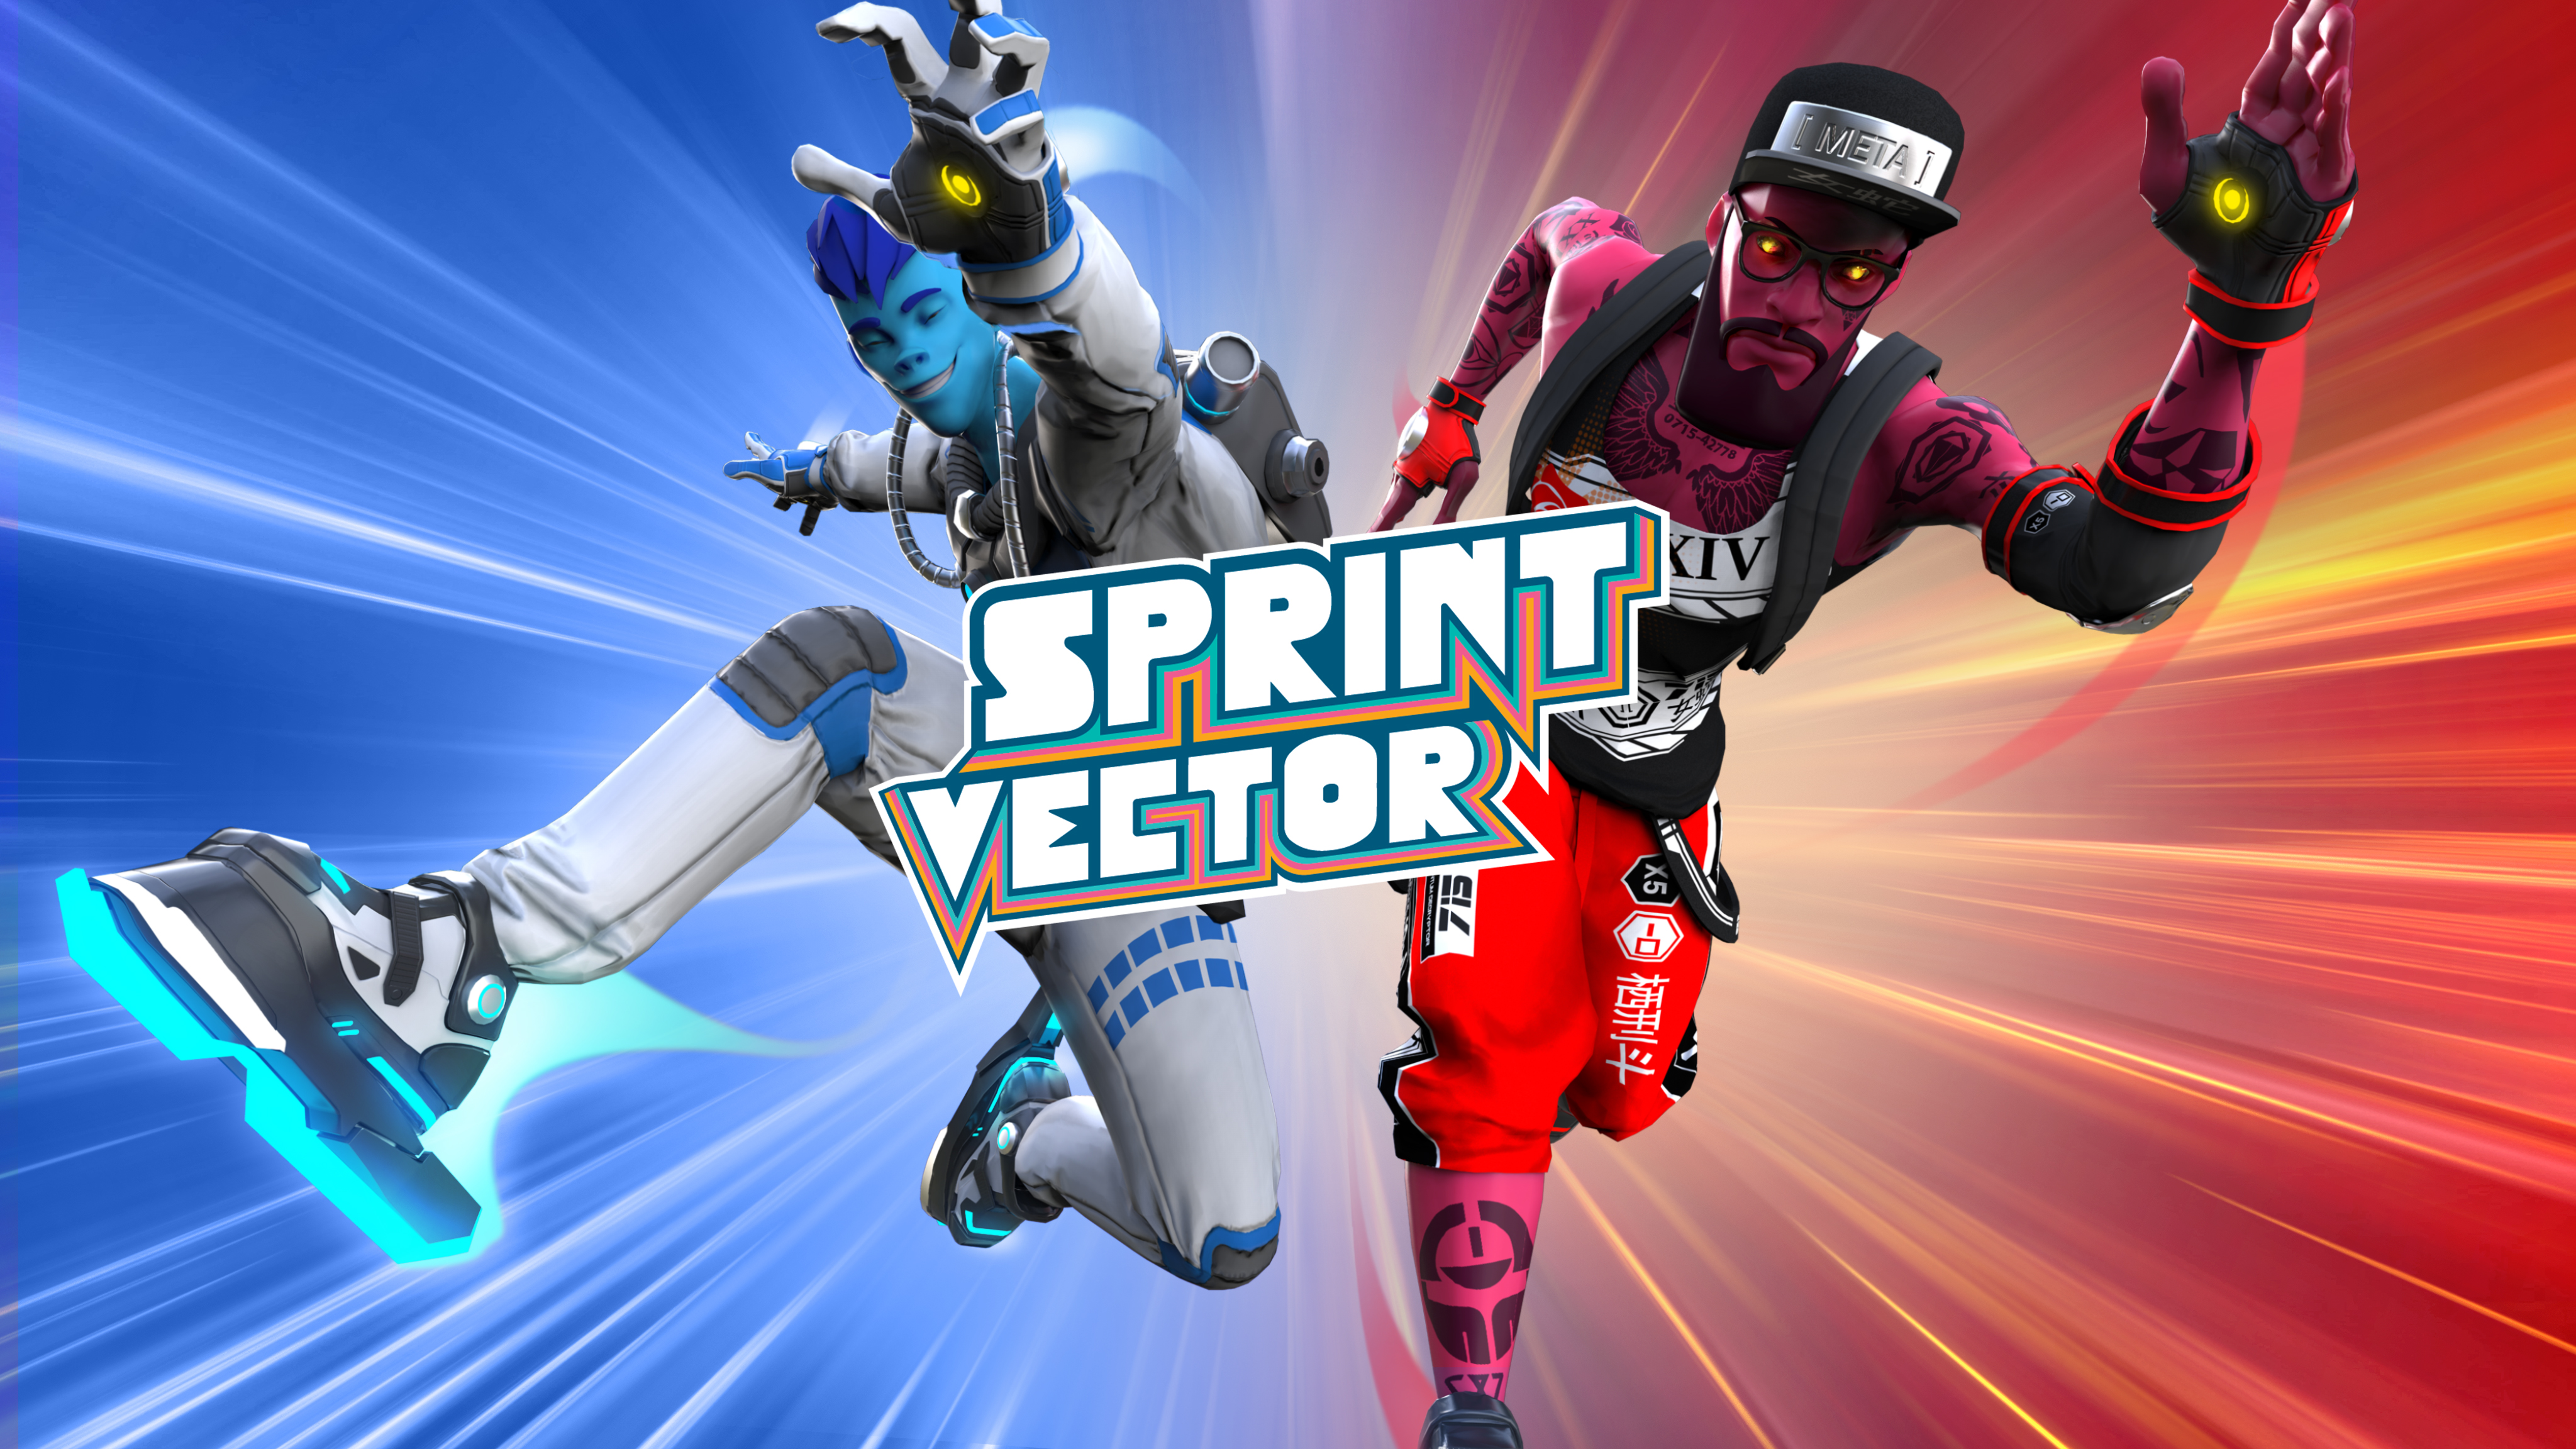 Sprint Vector VR game by Survios